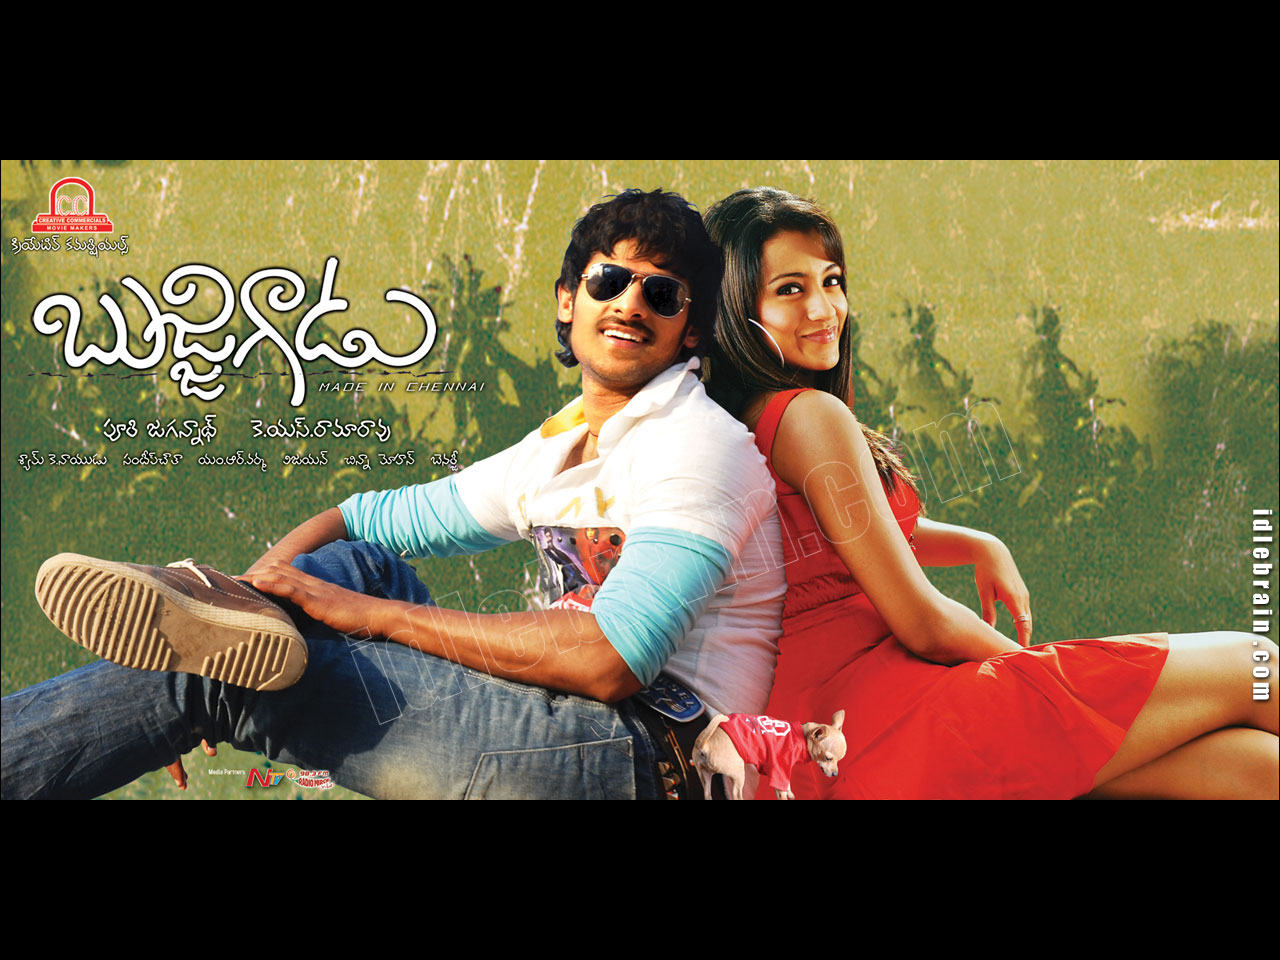 bujjigadu made in chennai telugu mp3 songs free download